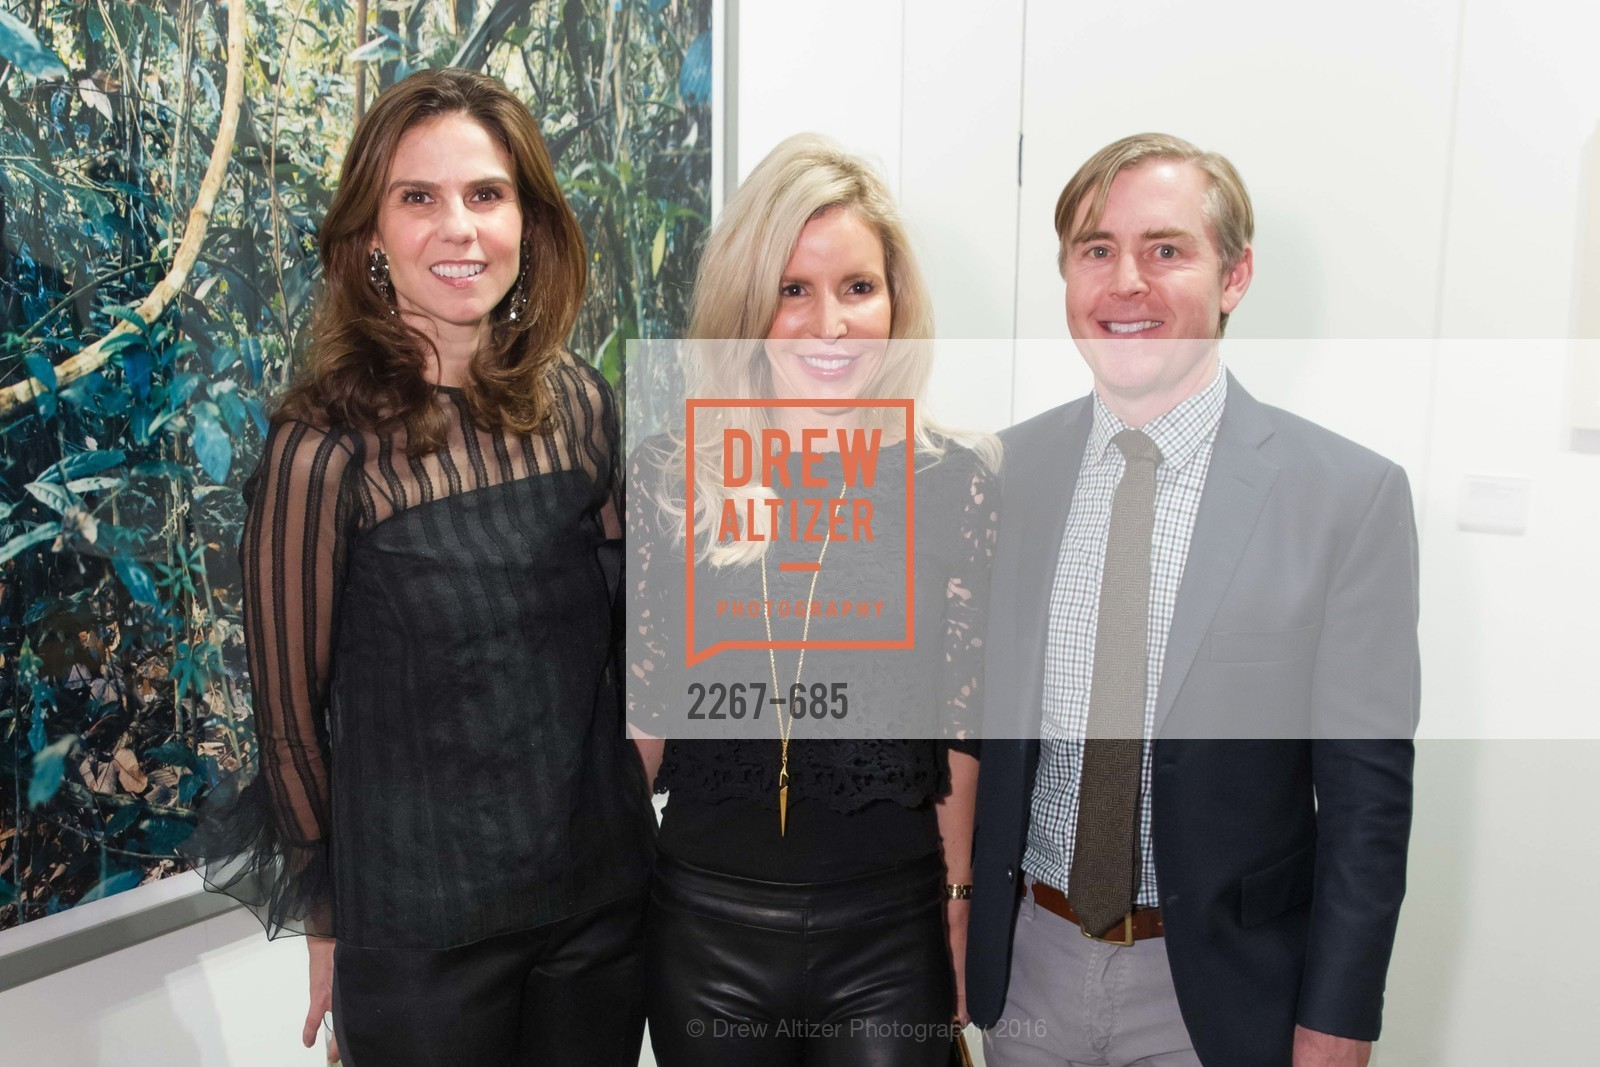 Andrea Zola, Lana Adair, John Adair, FOG Design+Art Preview Gala, Fort Mason Center Festival Pavilion, January 13th, 2016,Drew Altizer, Drew Altizer Photography, full-service agency, private events, San Francisco photographer, photographer california